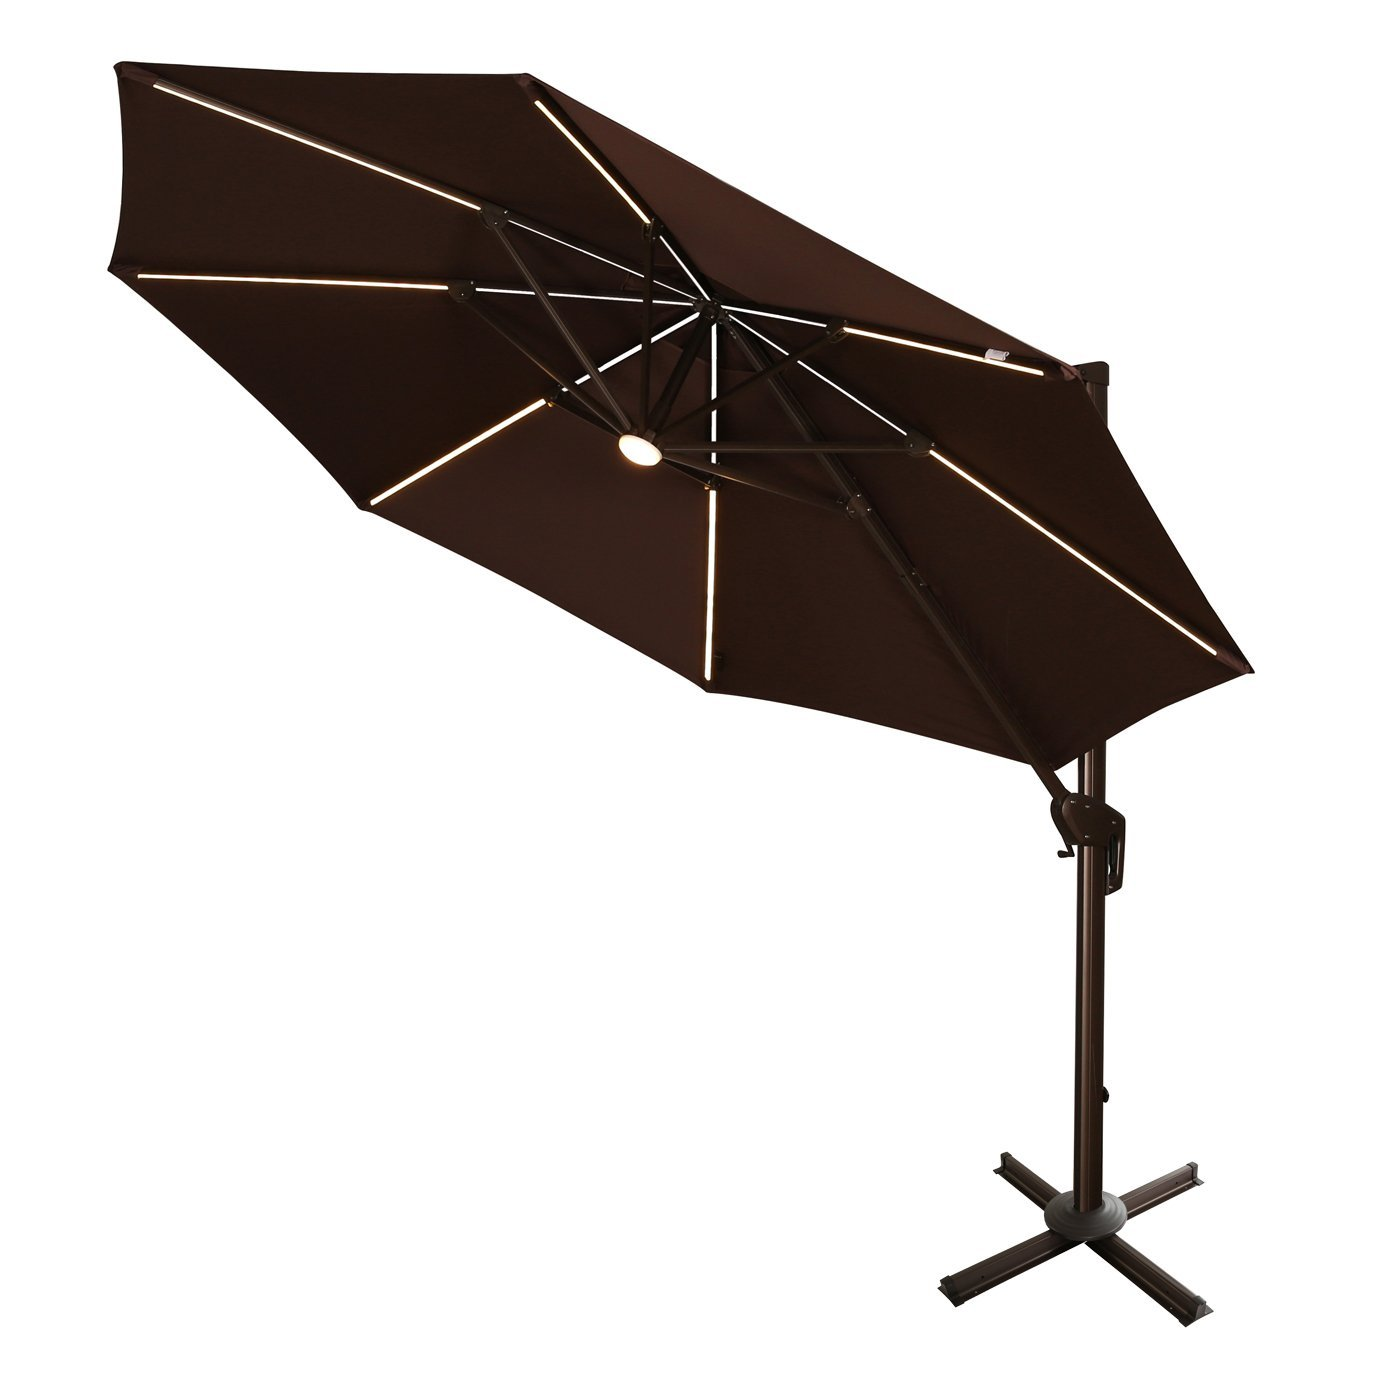 Review of Ulax furniture 360 degree Rotation 11 Ft Deluxe Solar Powered LED Lights Outdoor Offset Hanging Market Umbrella